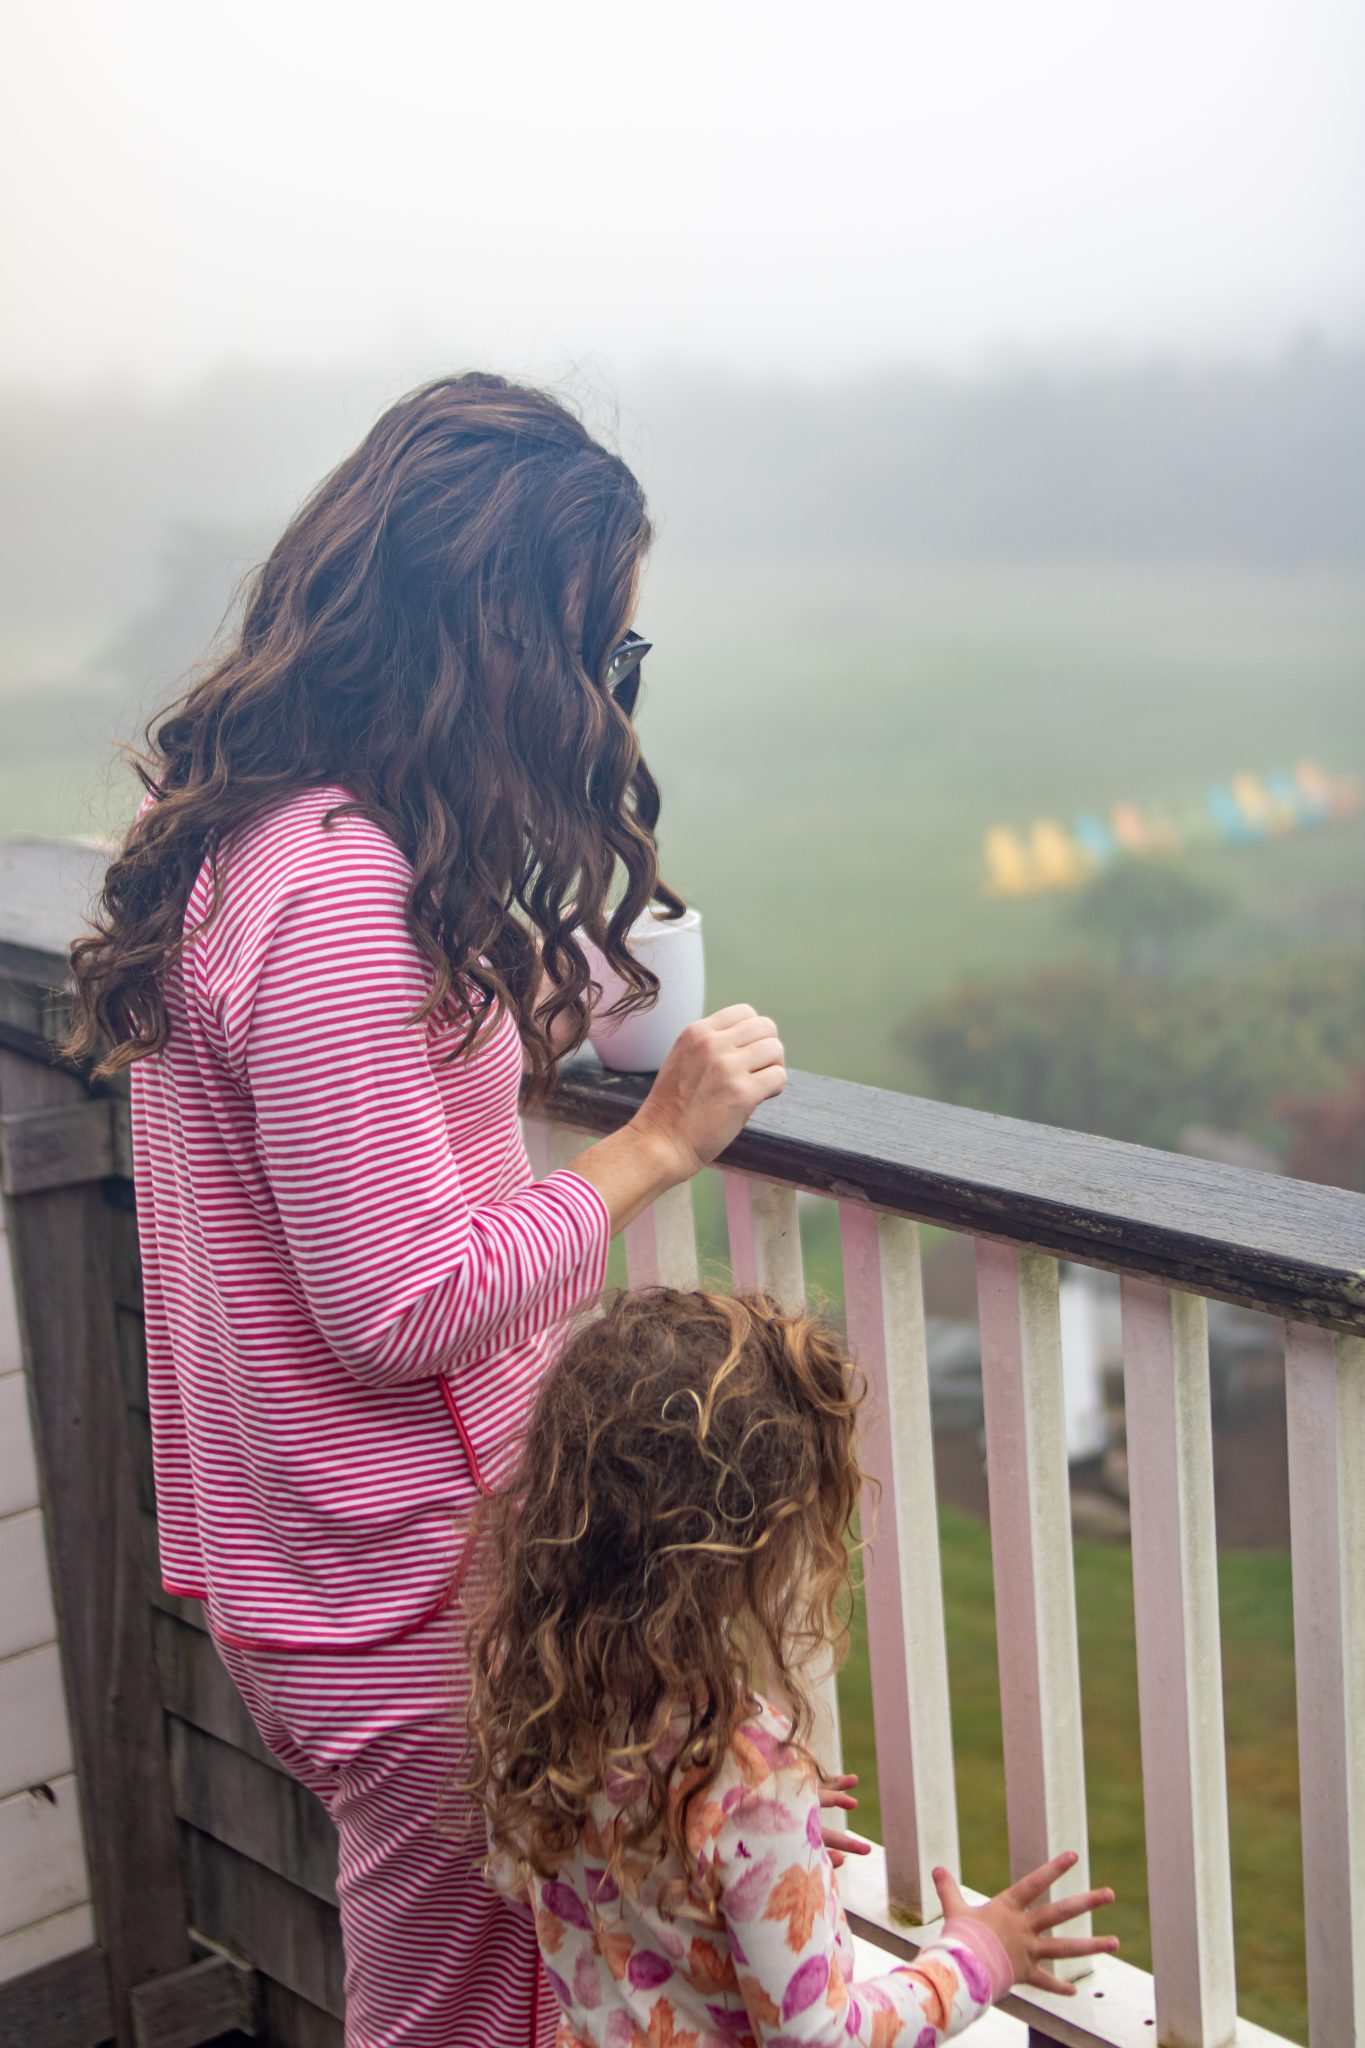 Mom in Lake Pajamas and Curly Haired Girl in Burts Bees Baby Pajamas on Balcony at the Winnetu on Foggy Day in September